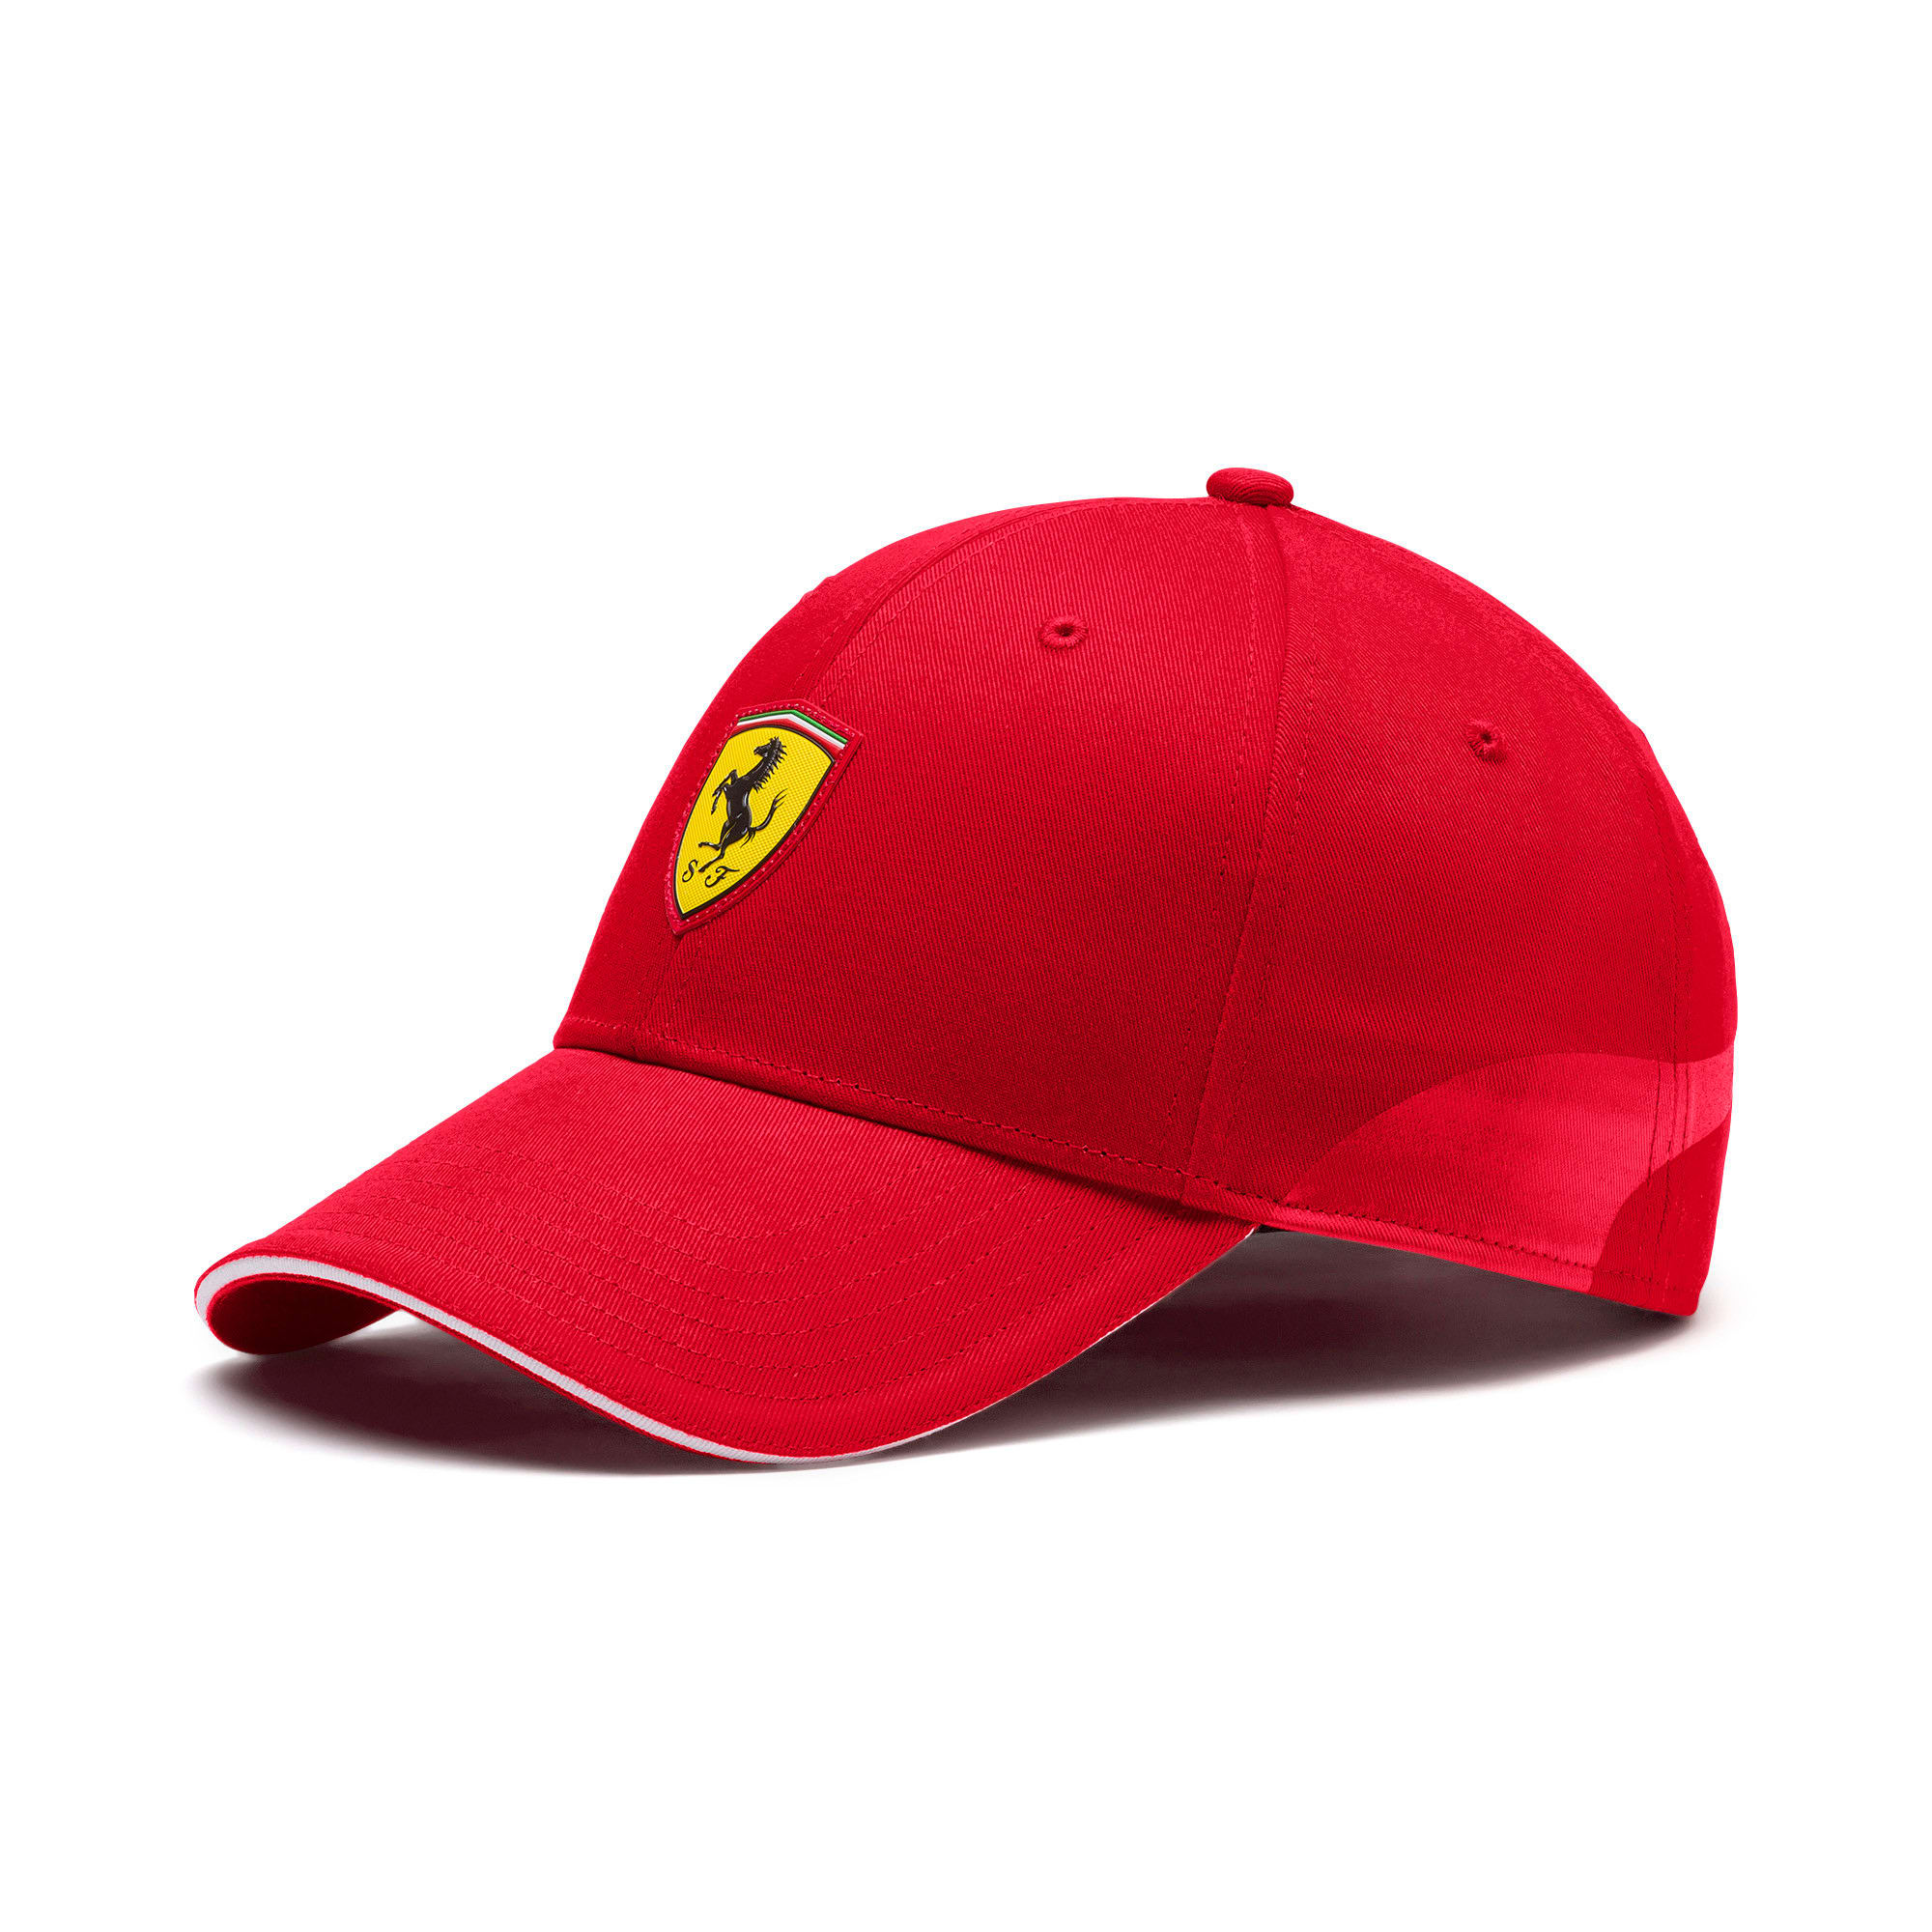 Thumbnail 1 of Ferrari Fanwear Cap, Rosso Corsa, medium